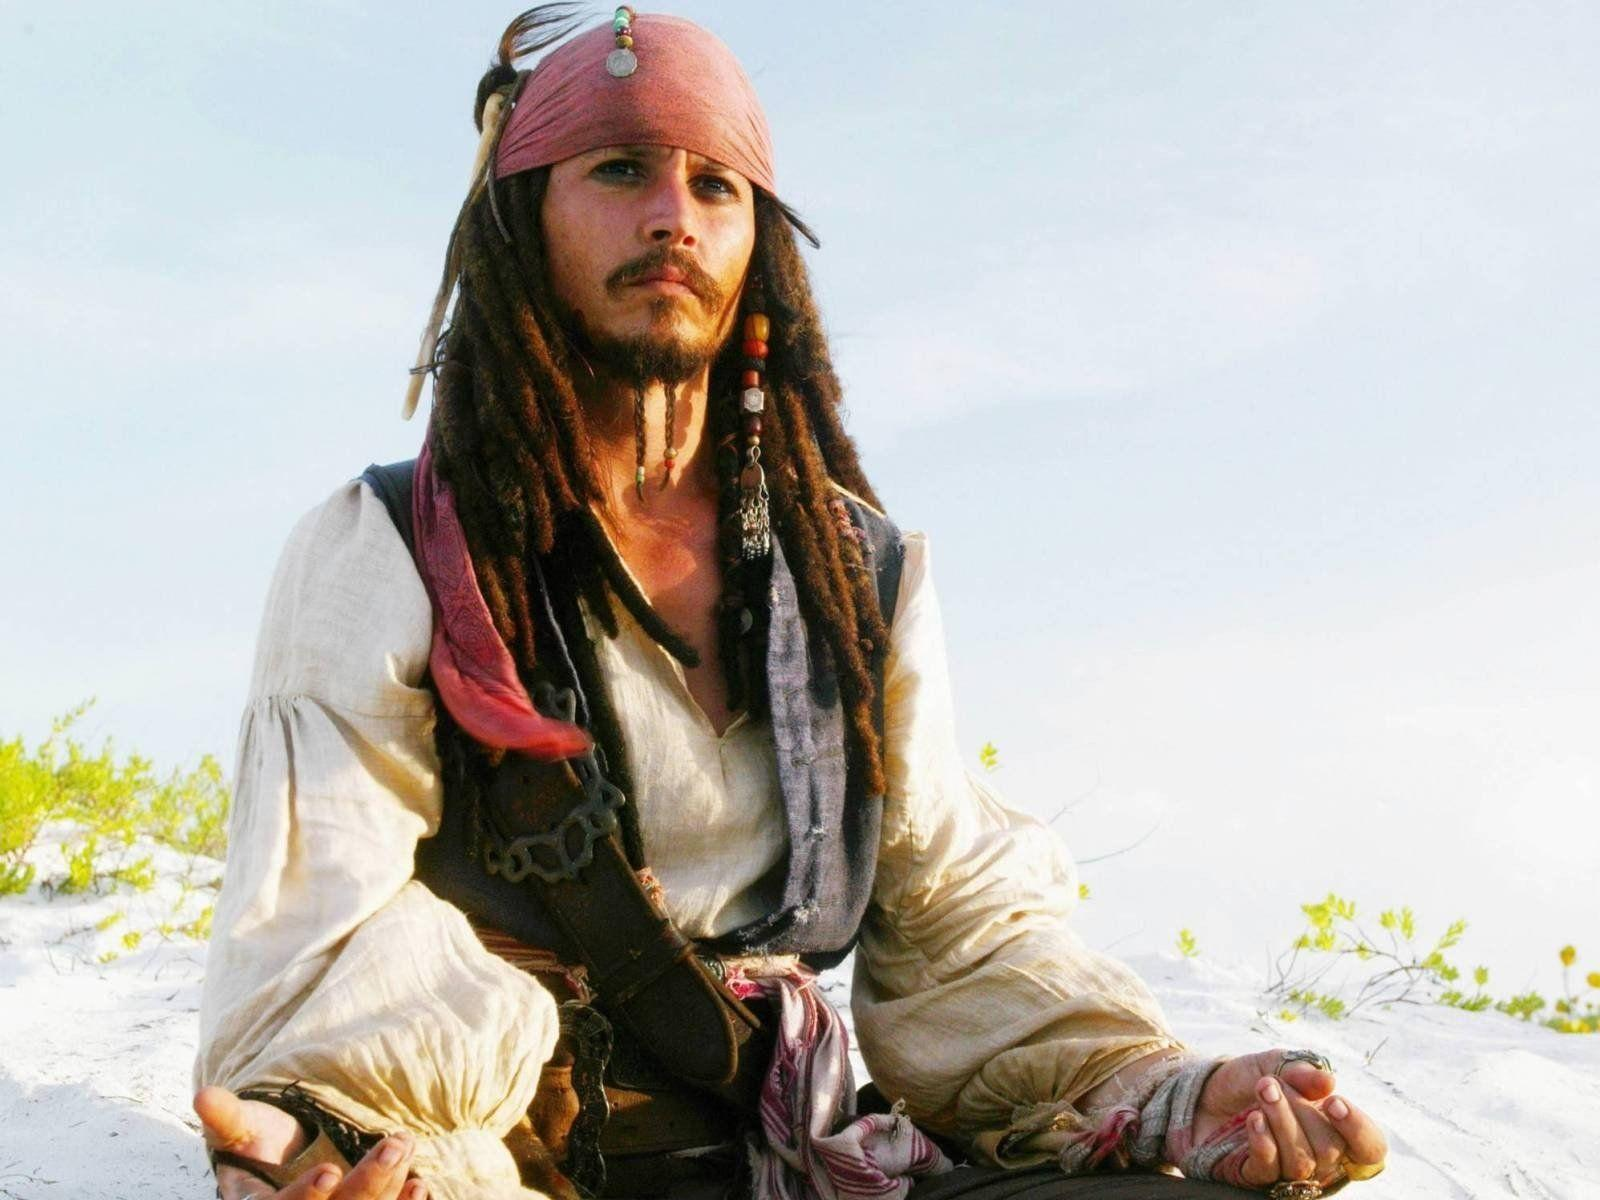 pirates of the caribbean johnny depp jack sparrow beach HD wallpaper